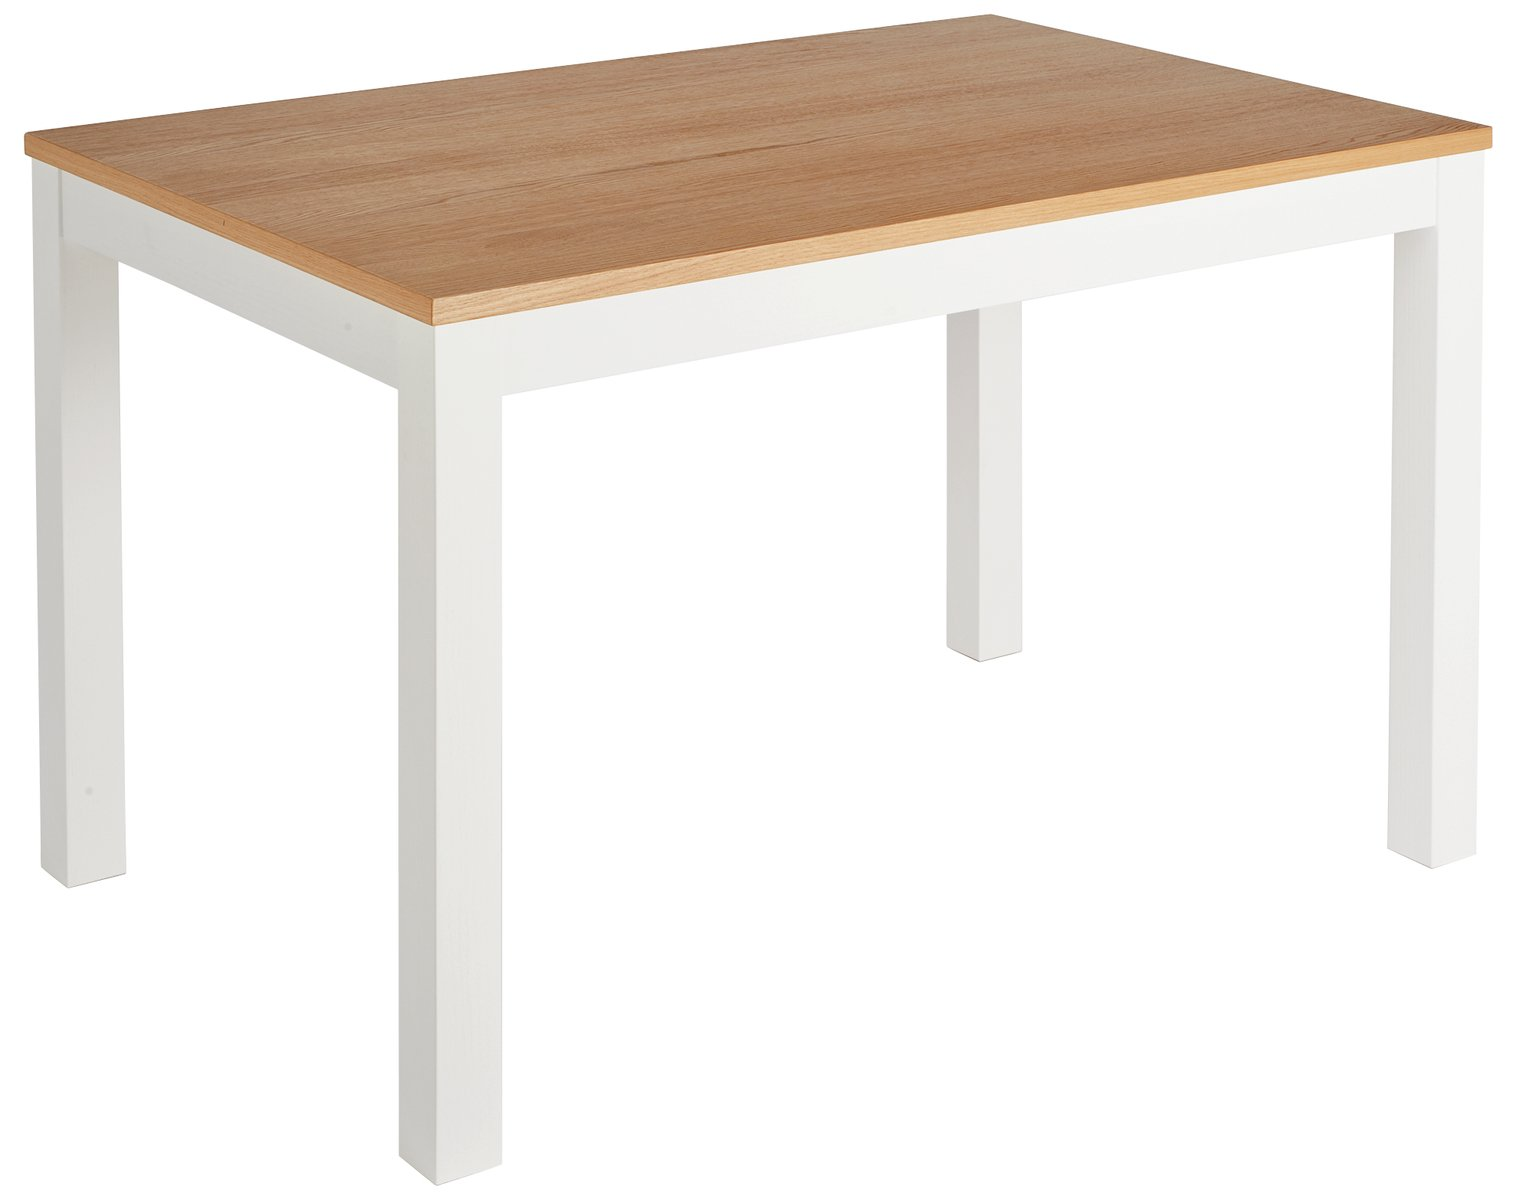 Collection clifton oak veneer 4 seater table two octer for Z table 99 percent